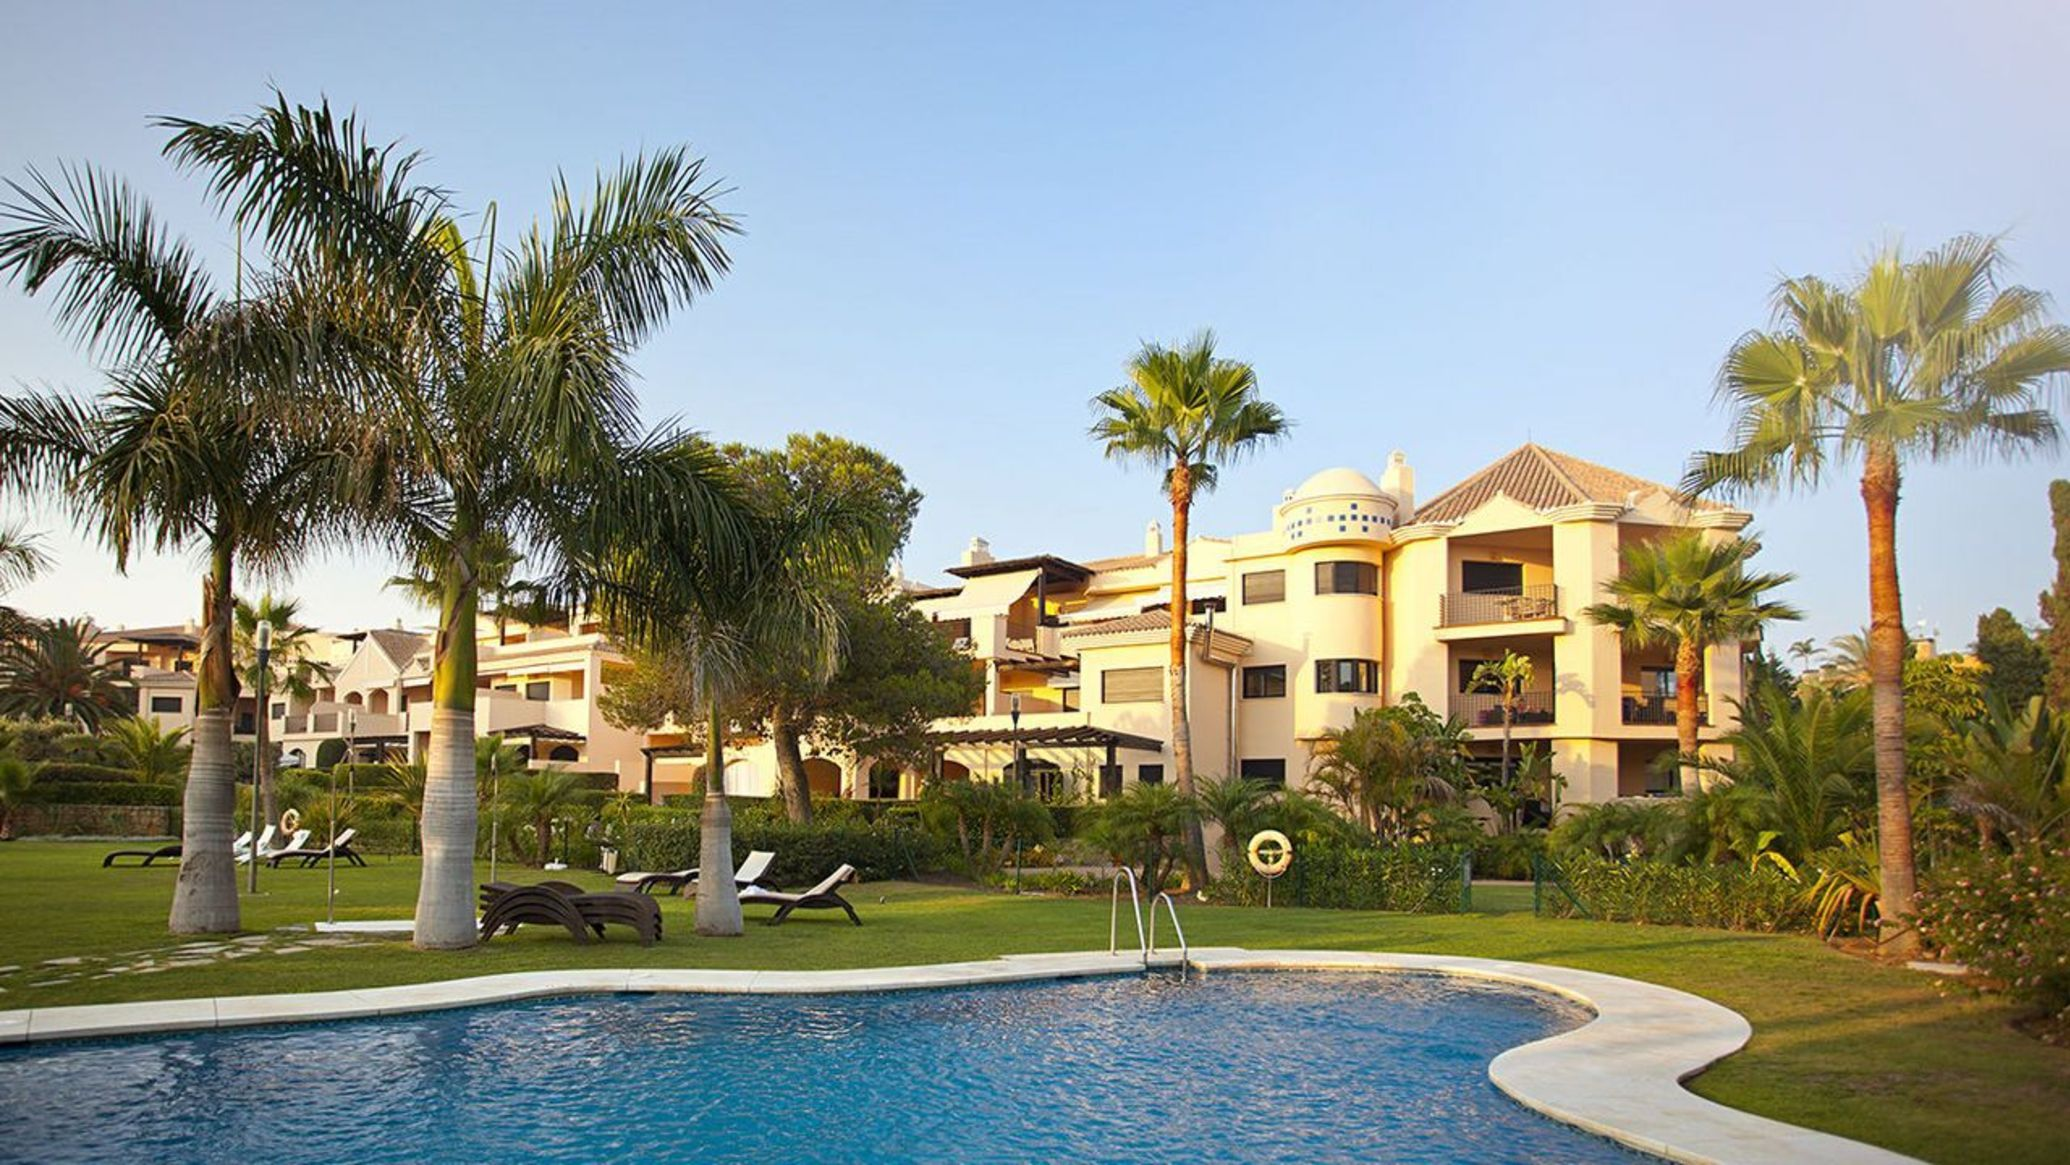 Sale Apartment in Las Mimosas of Puerto Banus